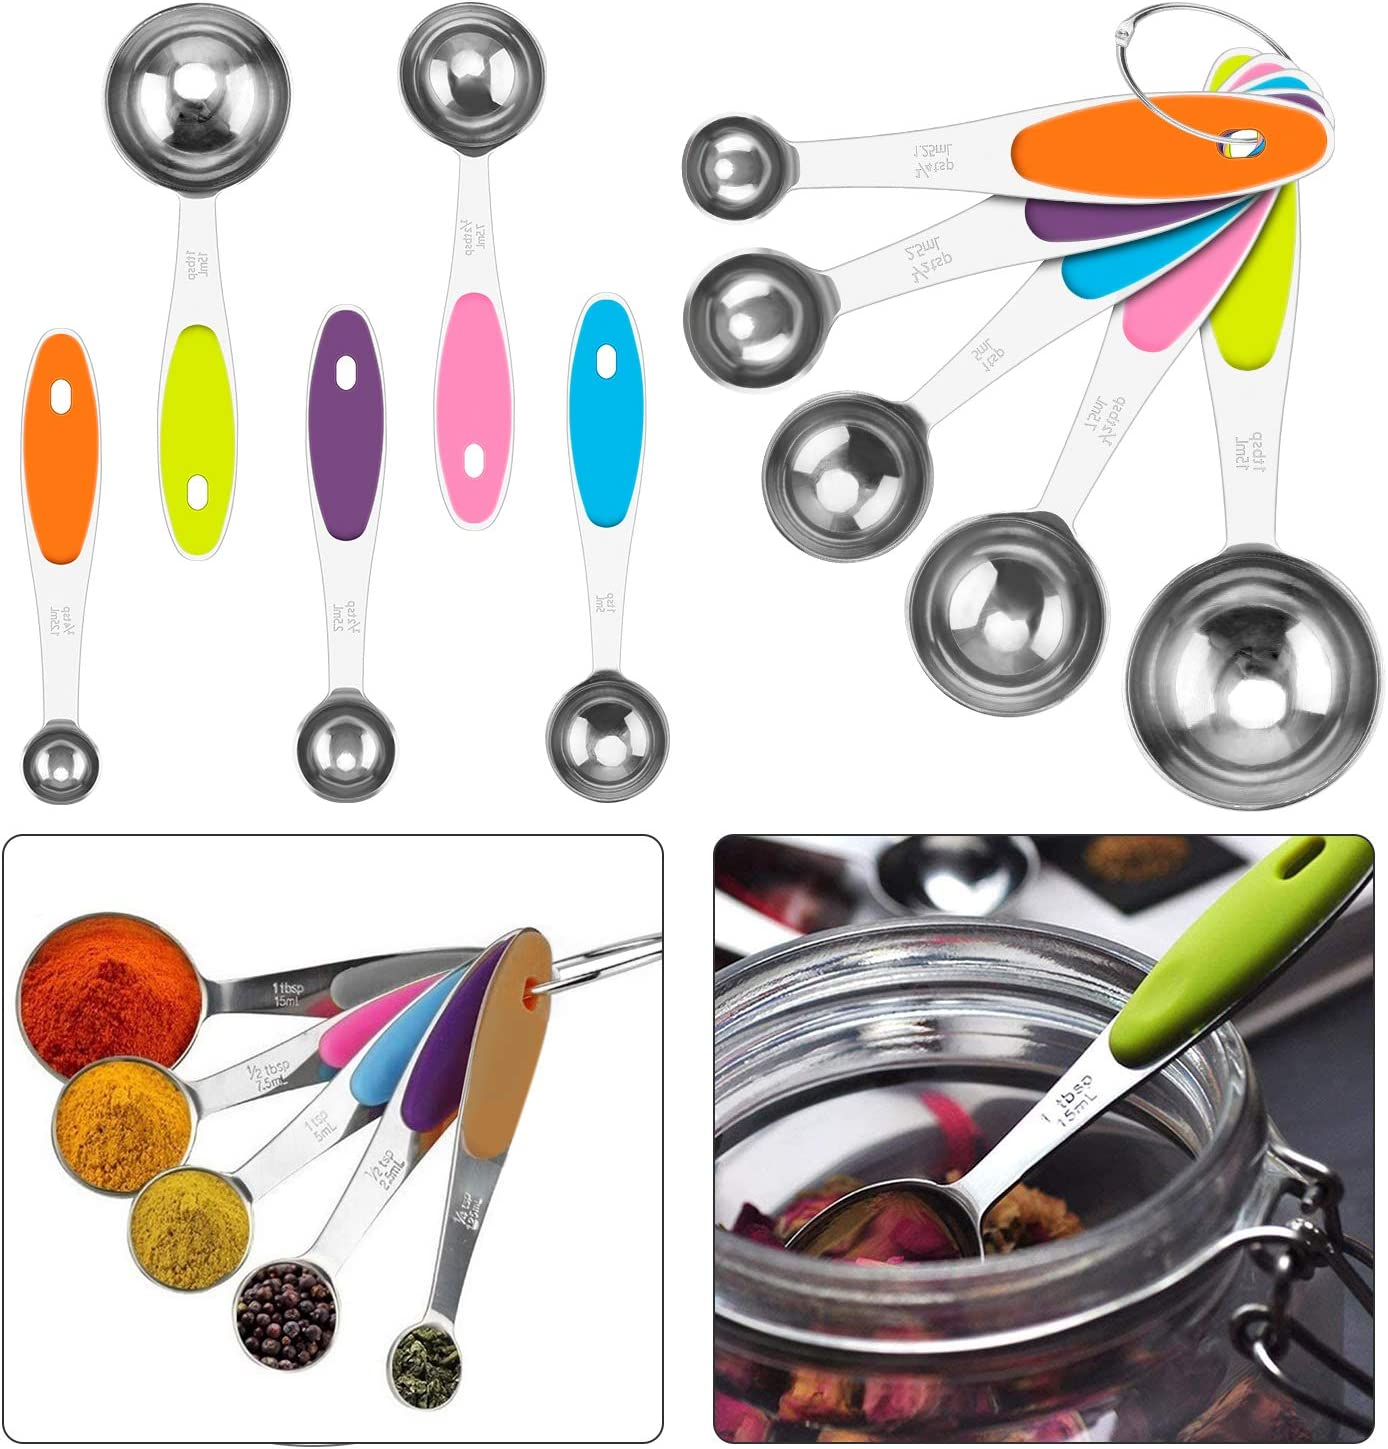 Kitchen Funnels Mini Funnel 3 Pcs Stainless Steel Funnel Set and 5 Measuring Spoons Mental Strainer Funnel with Long Handle for Fluid Oil Powder Beans Jar Flask Powder